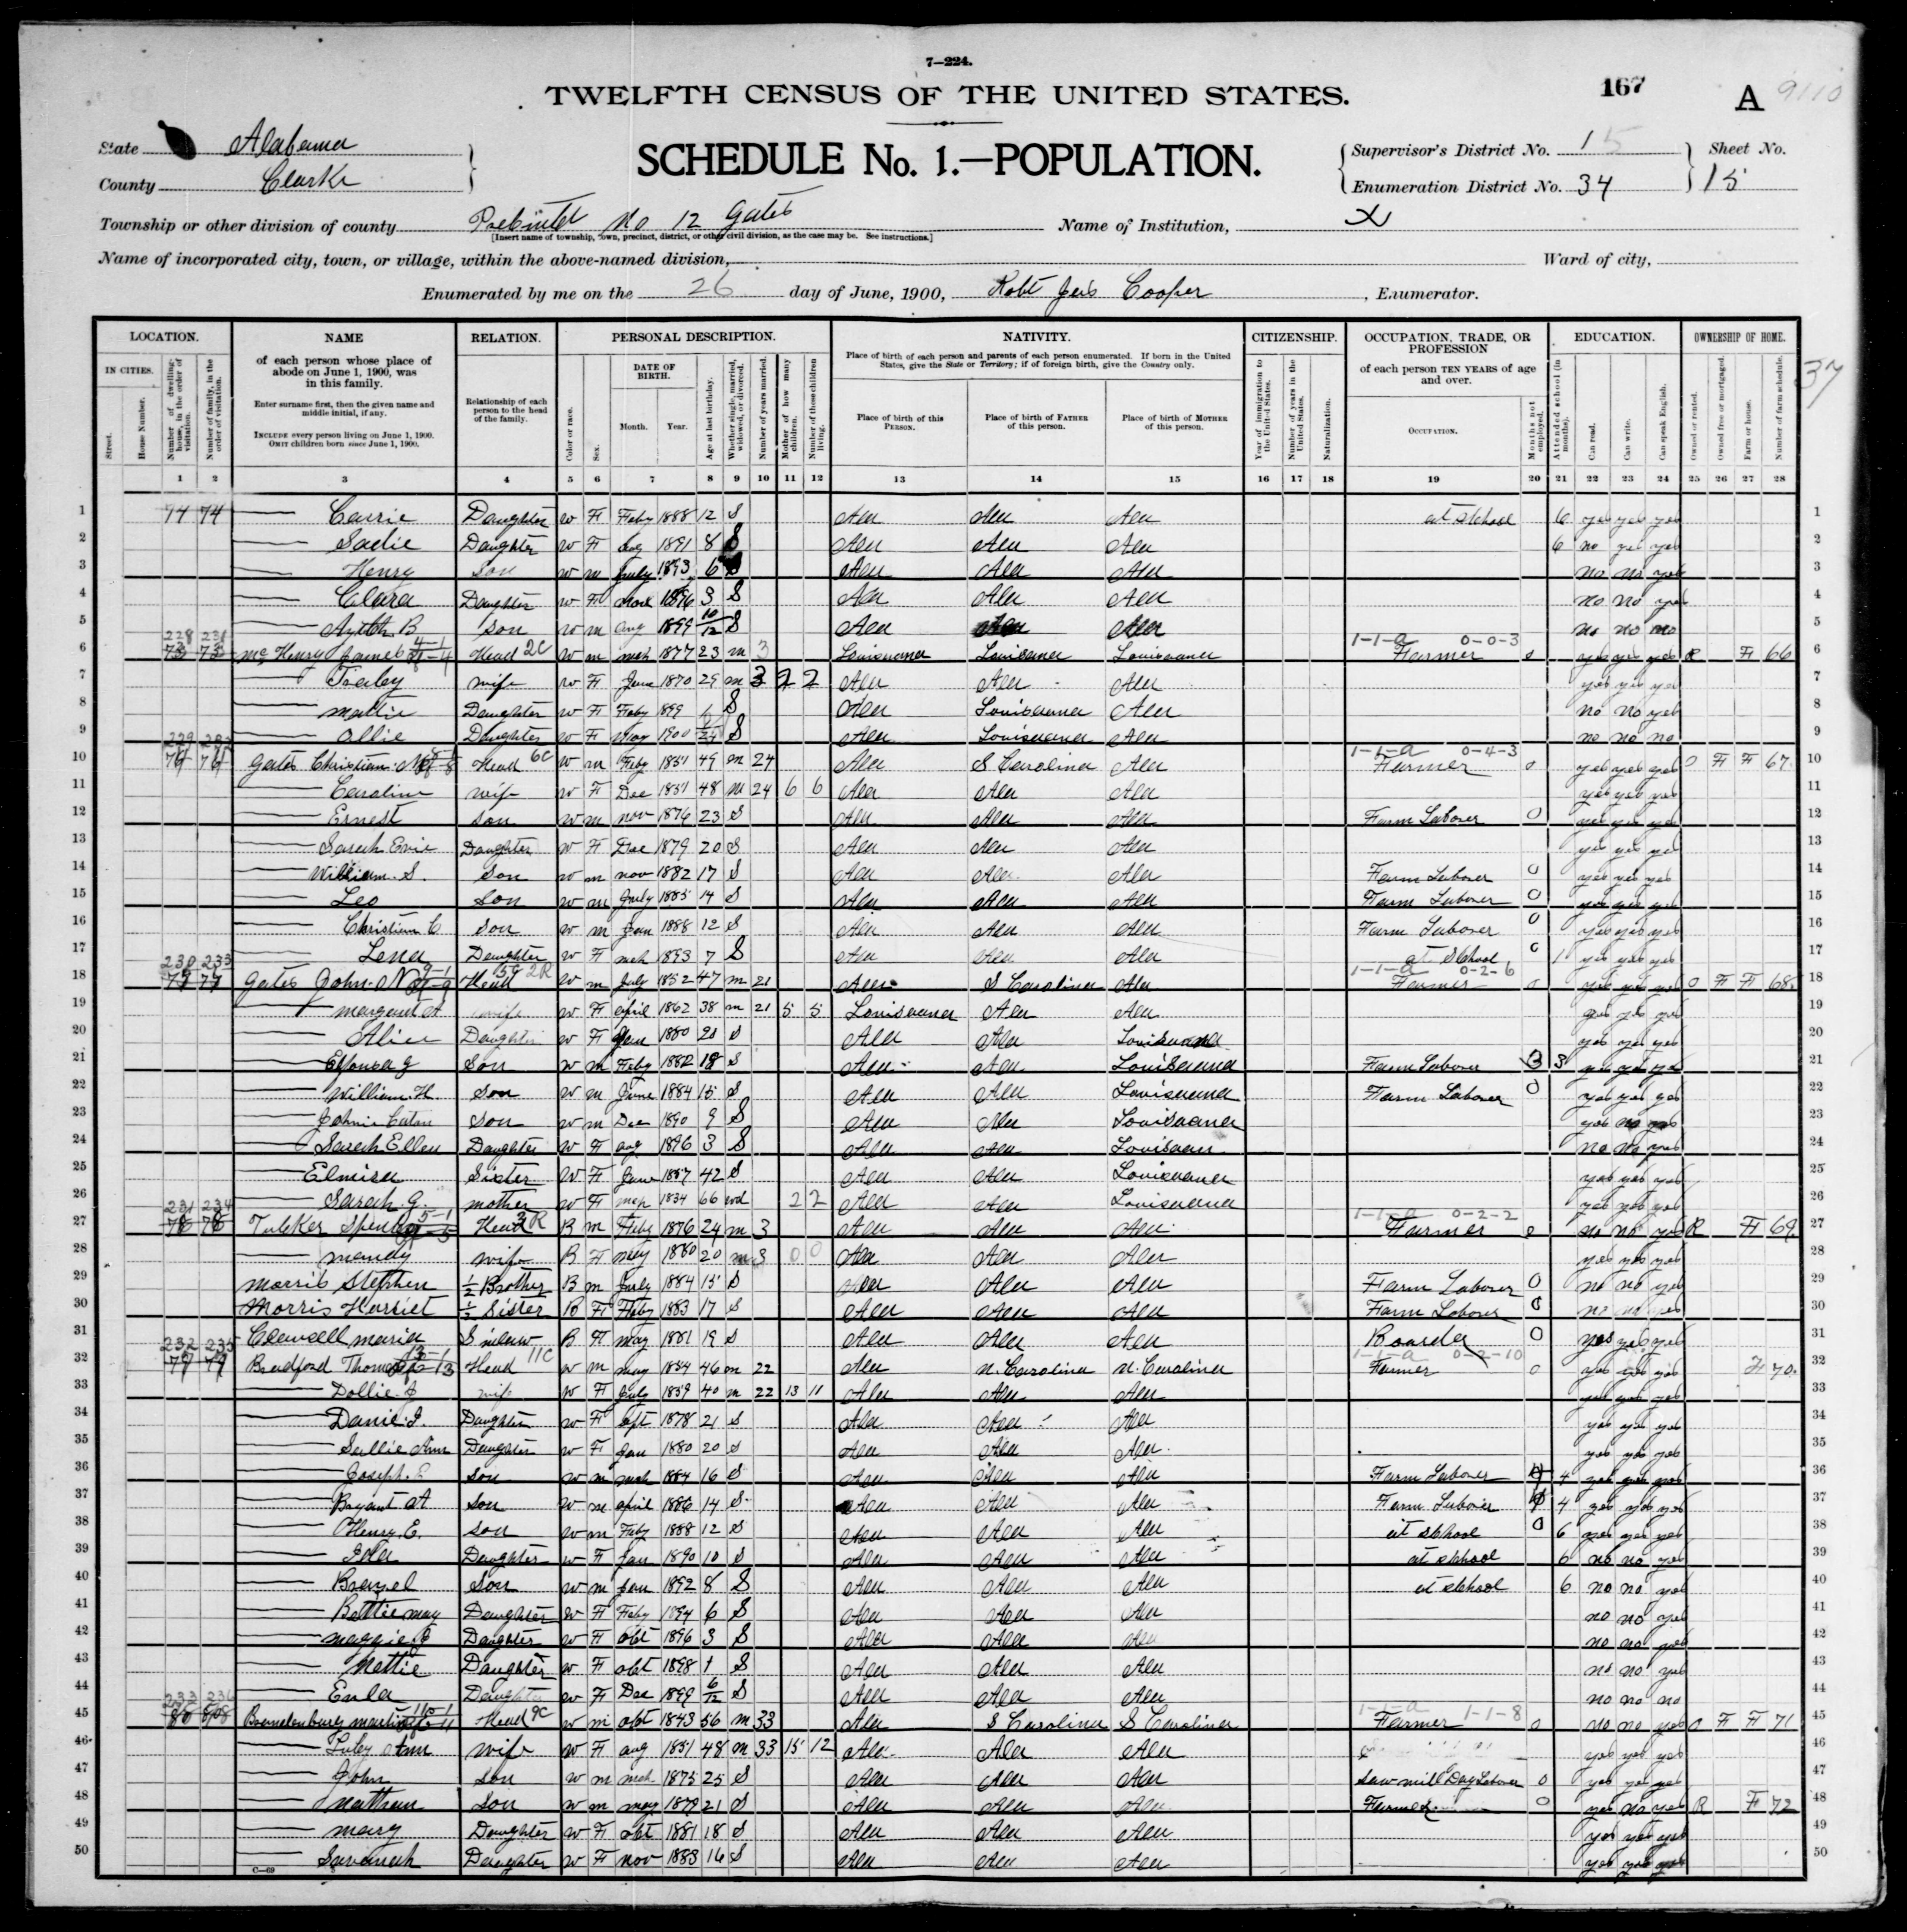 Alabama: CLARKE County, Enumeration District 34, Sheet No. 15A